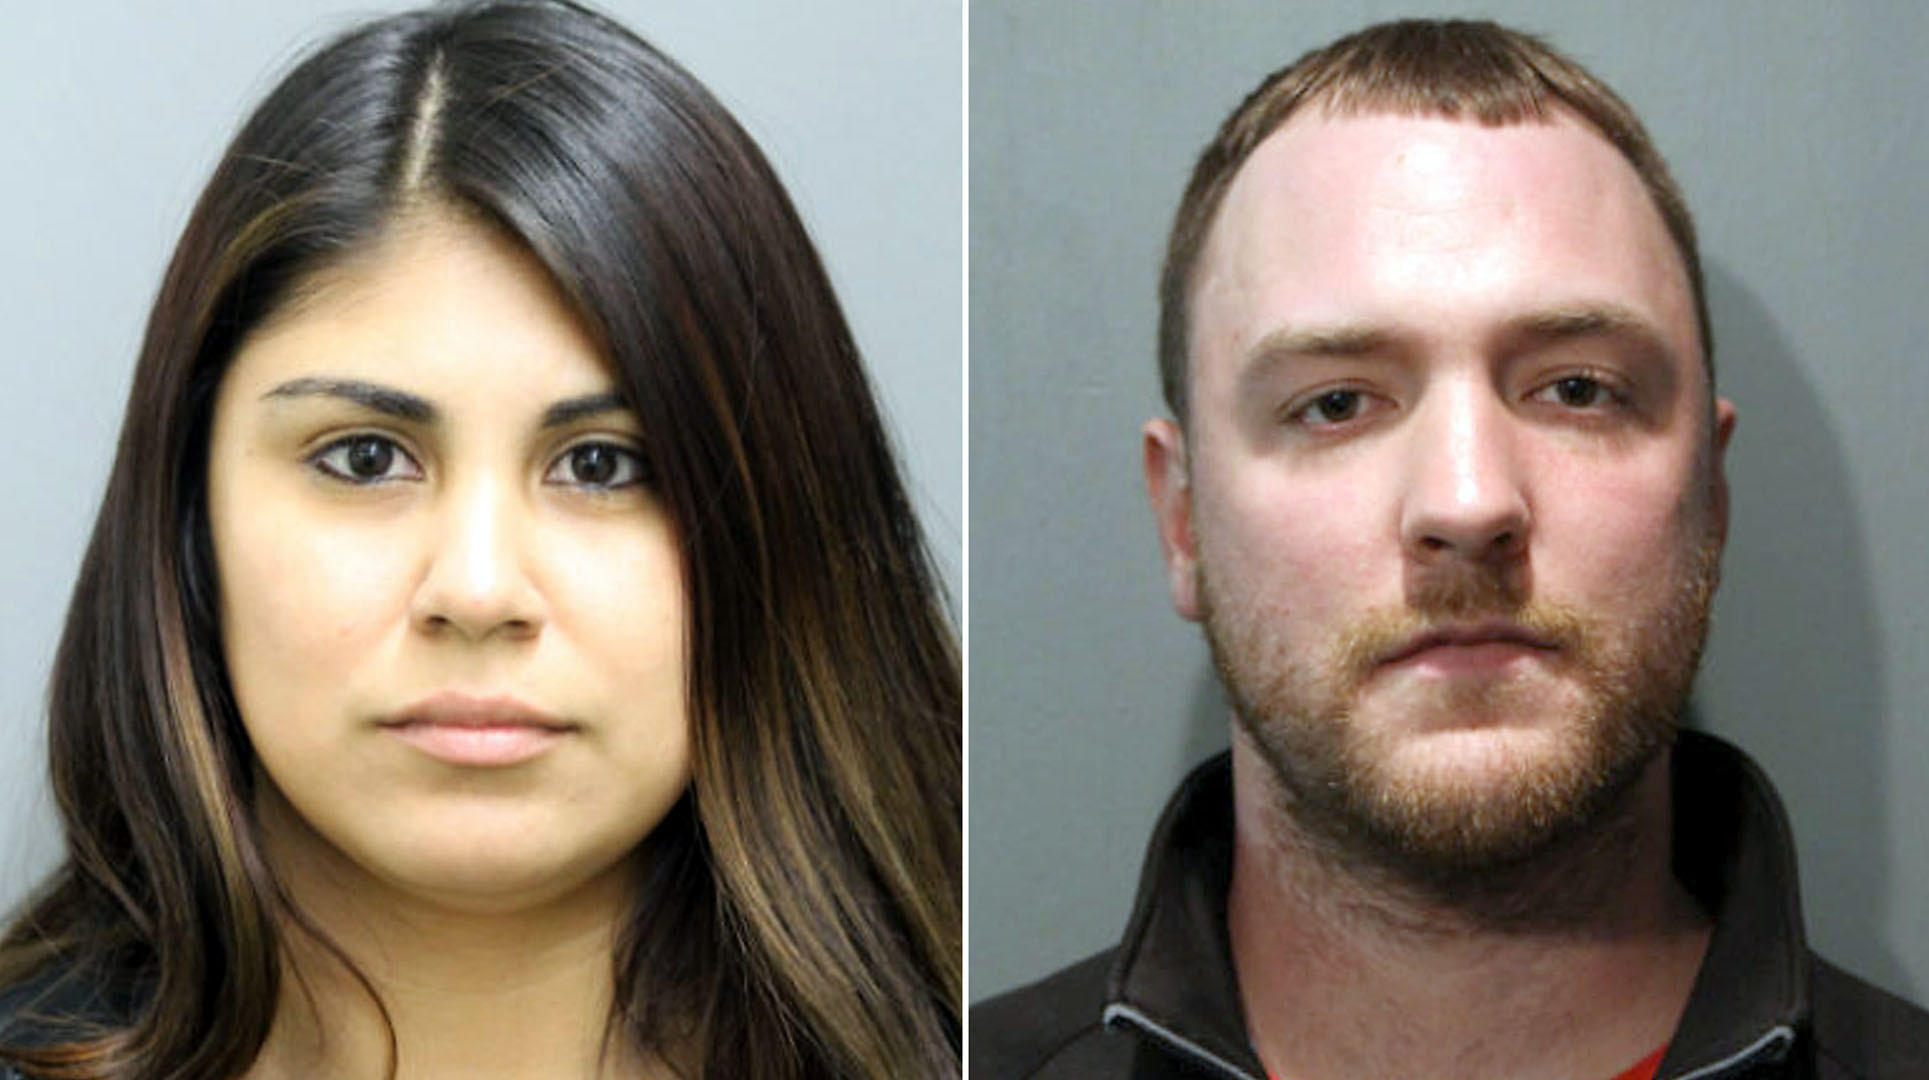 State rep's daughter, boyfriend given probation for attack on primary rival